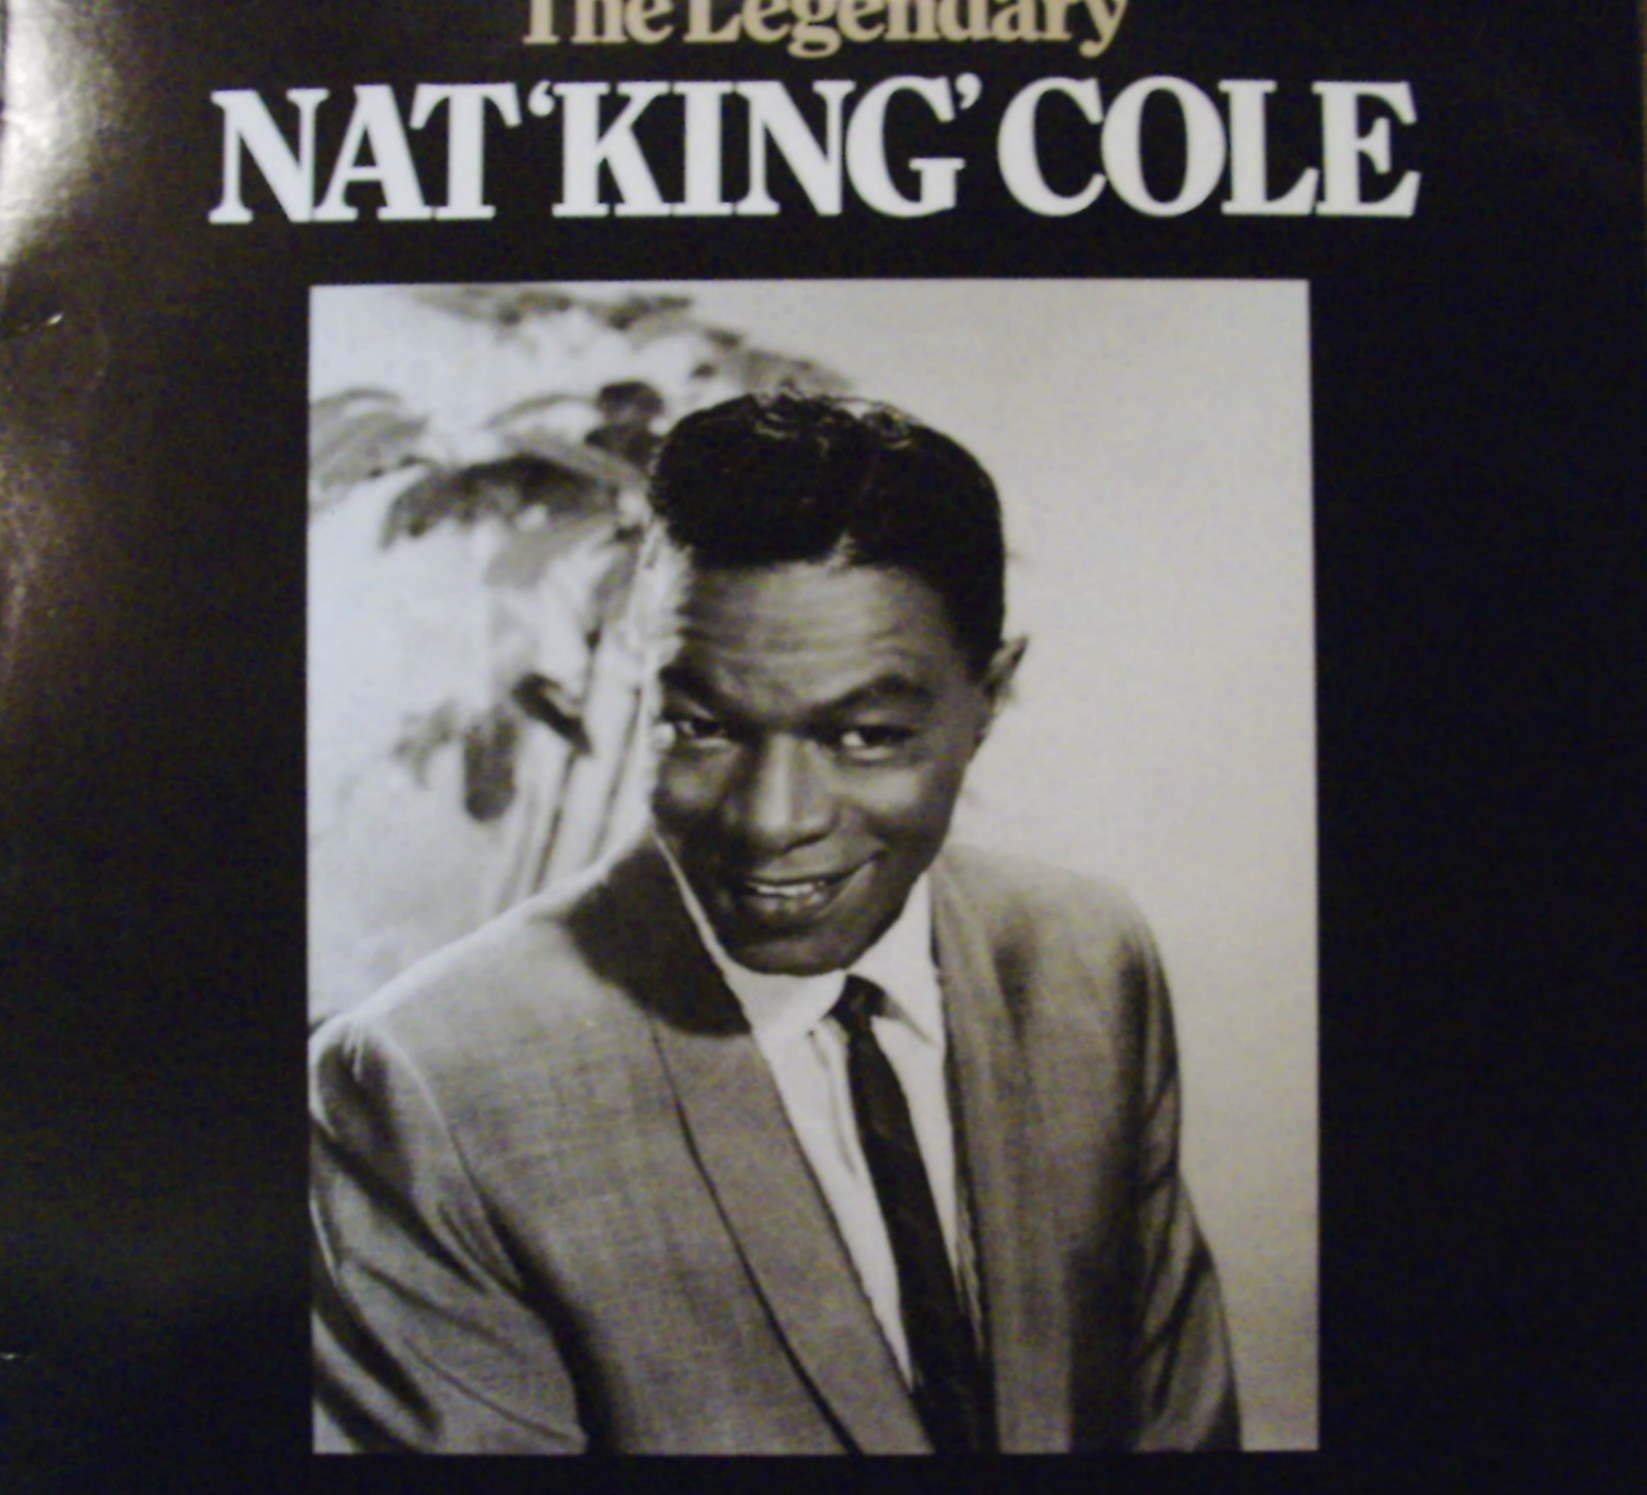 Nat King Cole / Legendary Nat King Cole